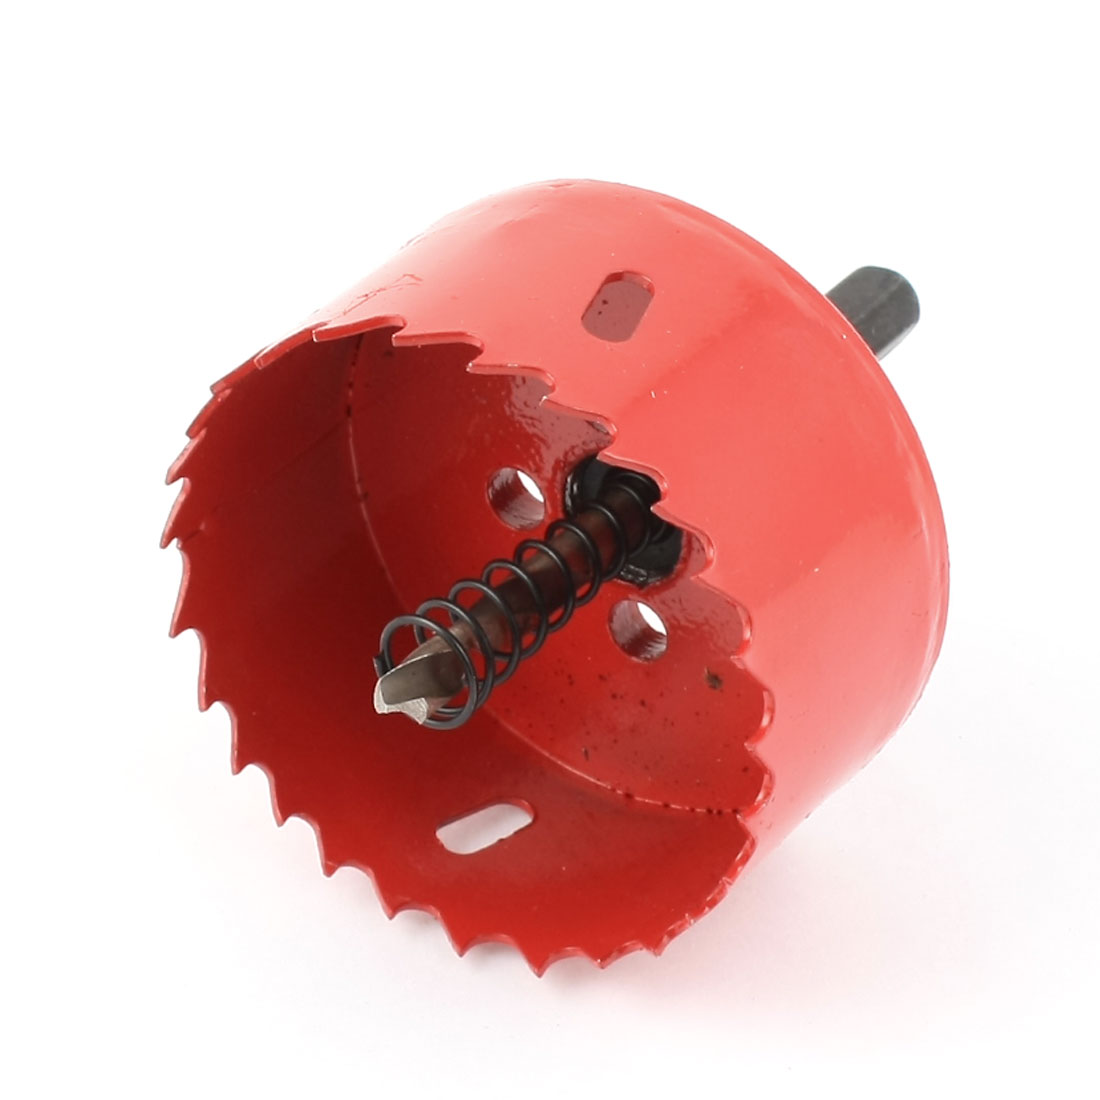 Подробнее о UXCELL 70Mm Cutting Dia Toothed Bi Metal Hole Saw Cutter Drill Bit Red For Wood Iron uxcell 42mm cutting dia 10mm shank twist drill bit bimetal hole saw cutter tool red